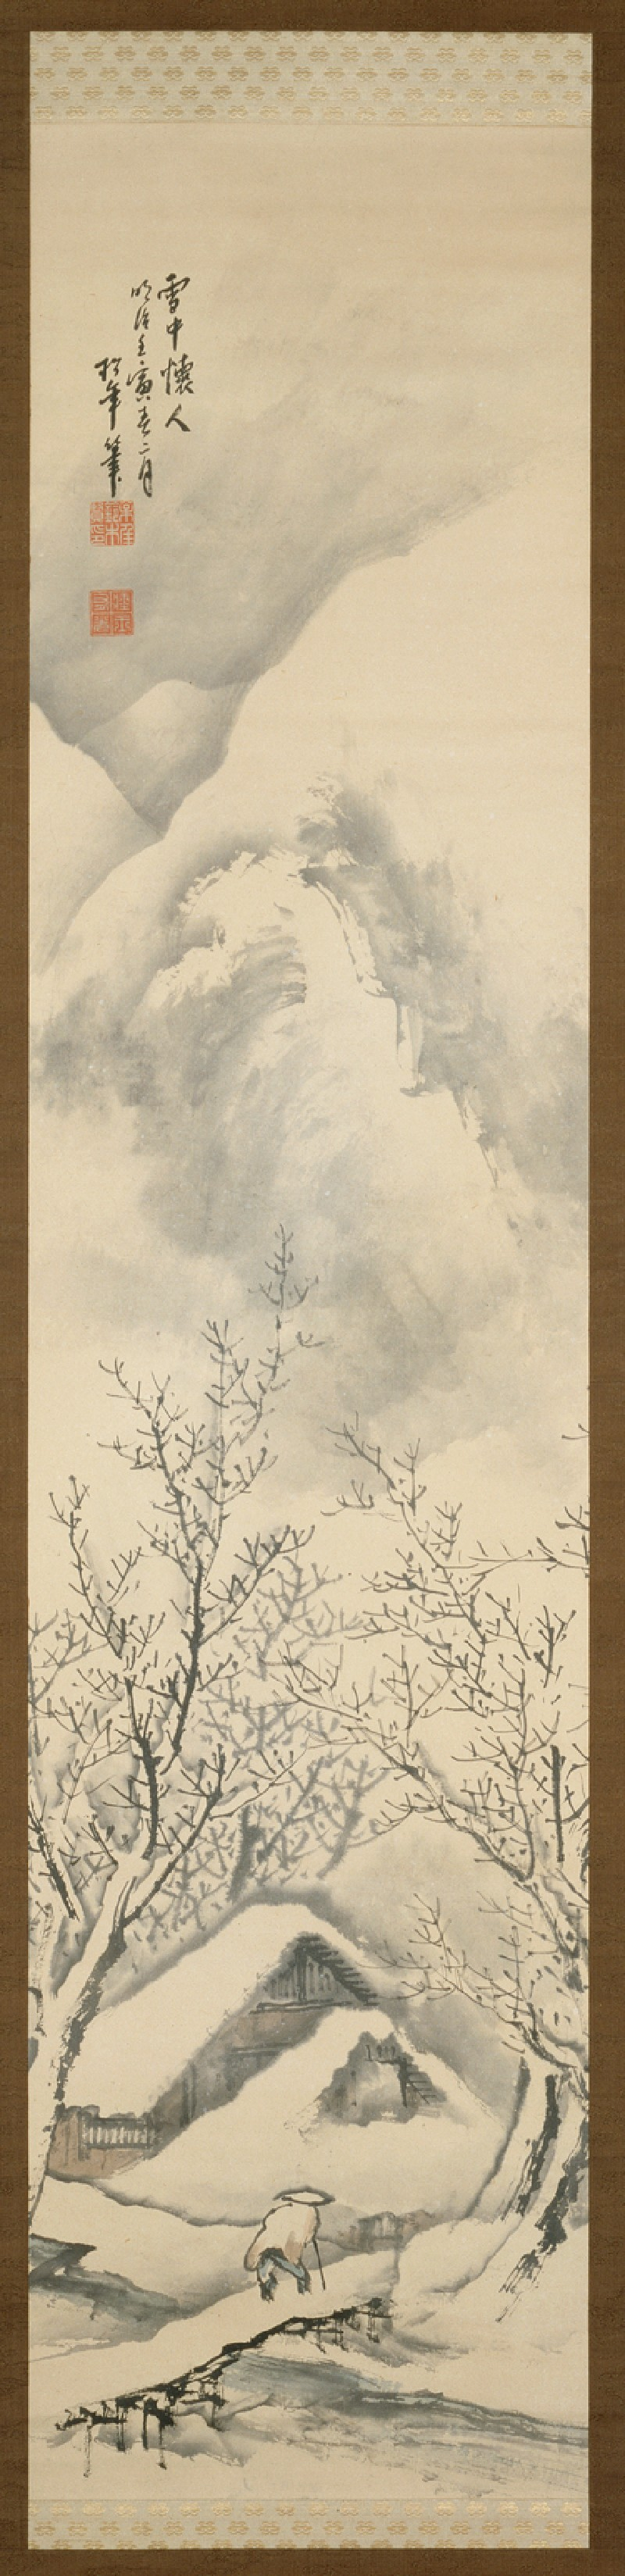 Snowscape depicting a man walking towards a hermitage